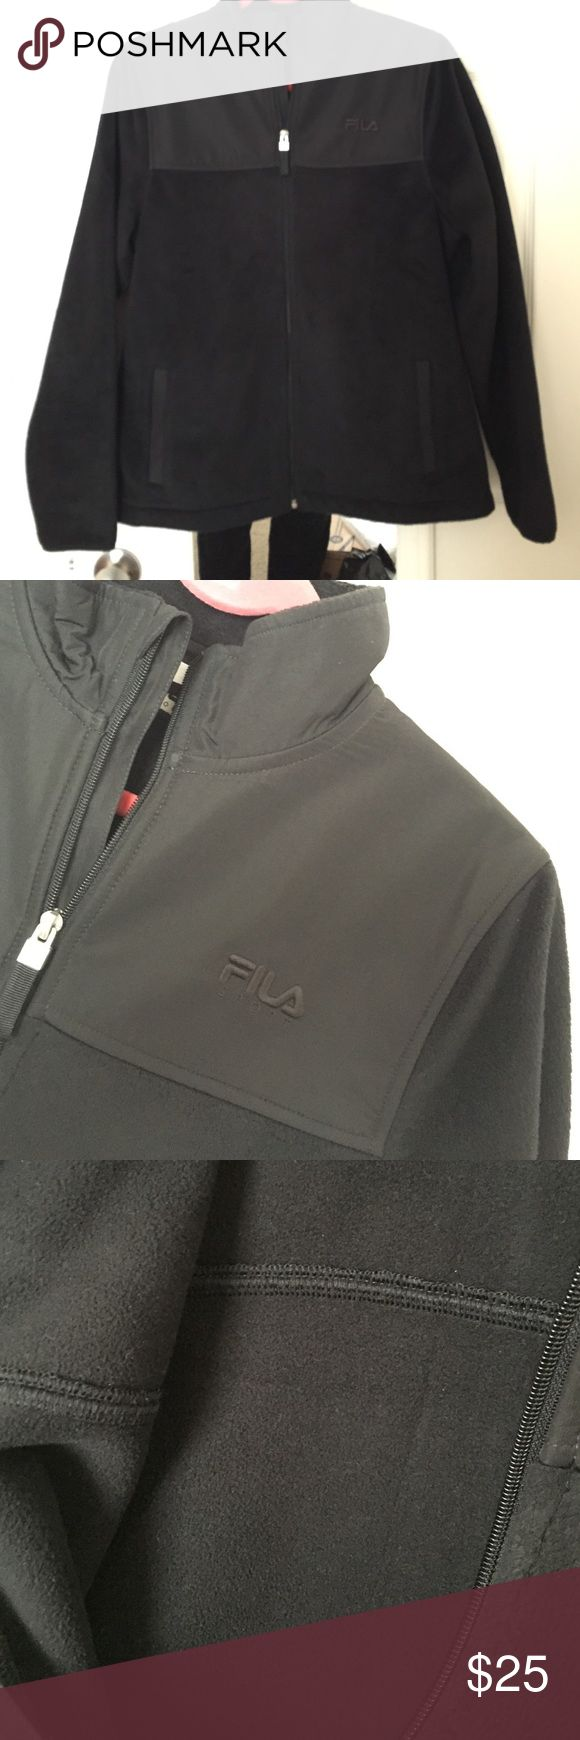 Fila jacket Super warm. Used a couple times but still in excellent conditions. No damages. No trade or holds Fila Jackets & Coats